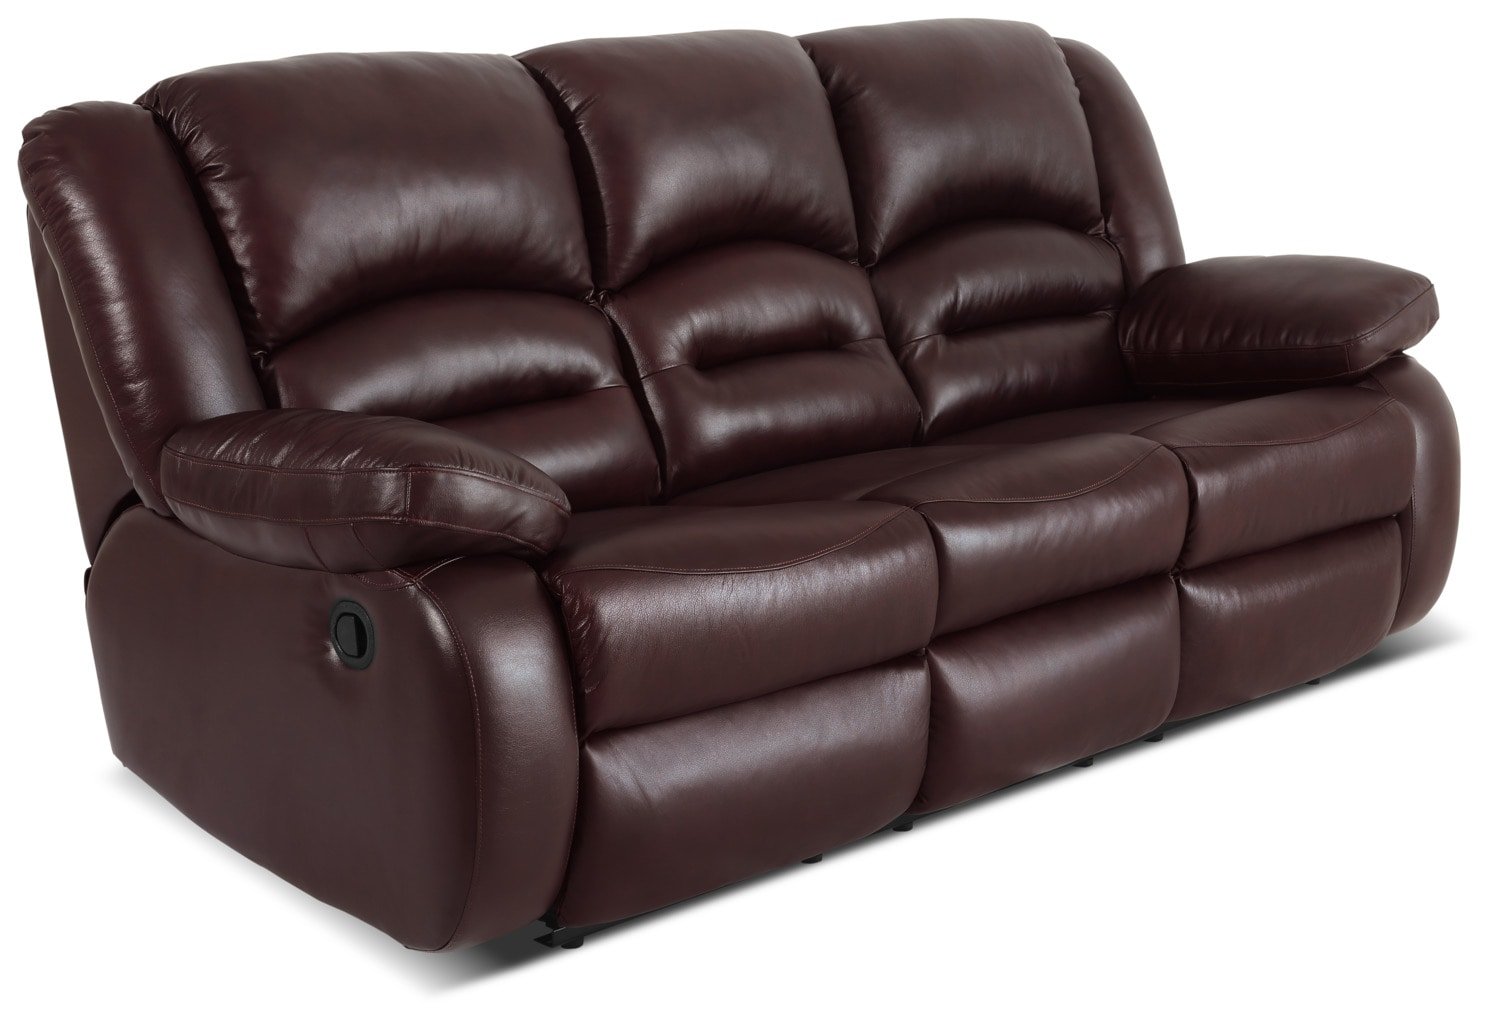 Toreno Genuine Leather Reclining Sofa Burgundy The Brick